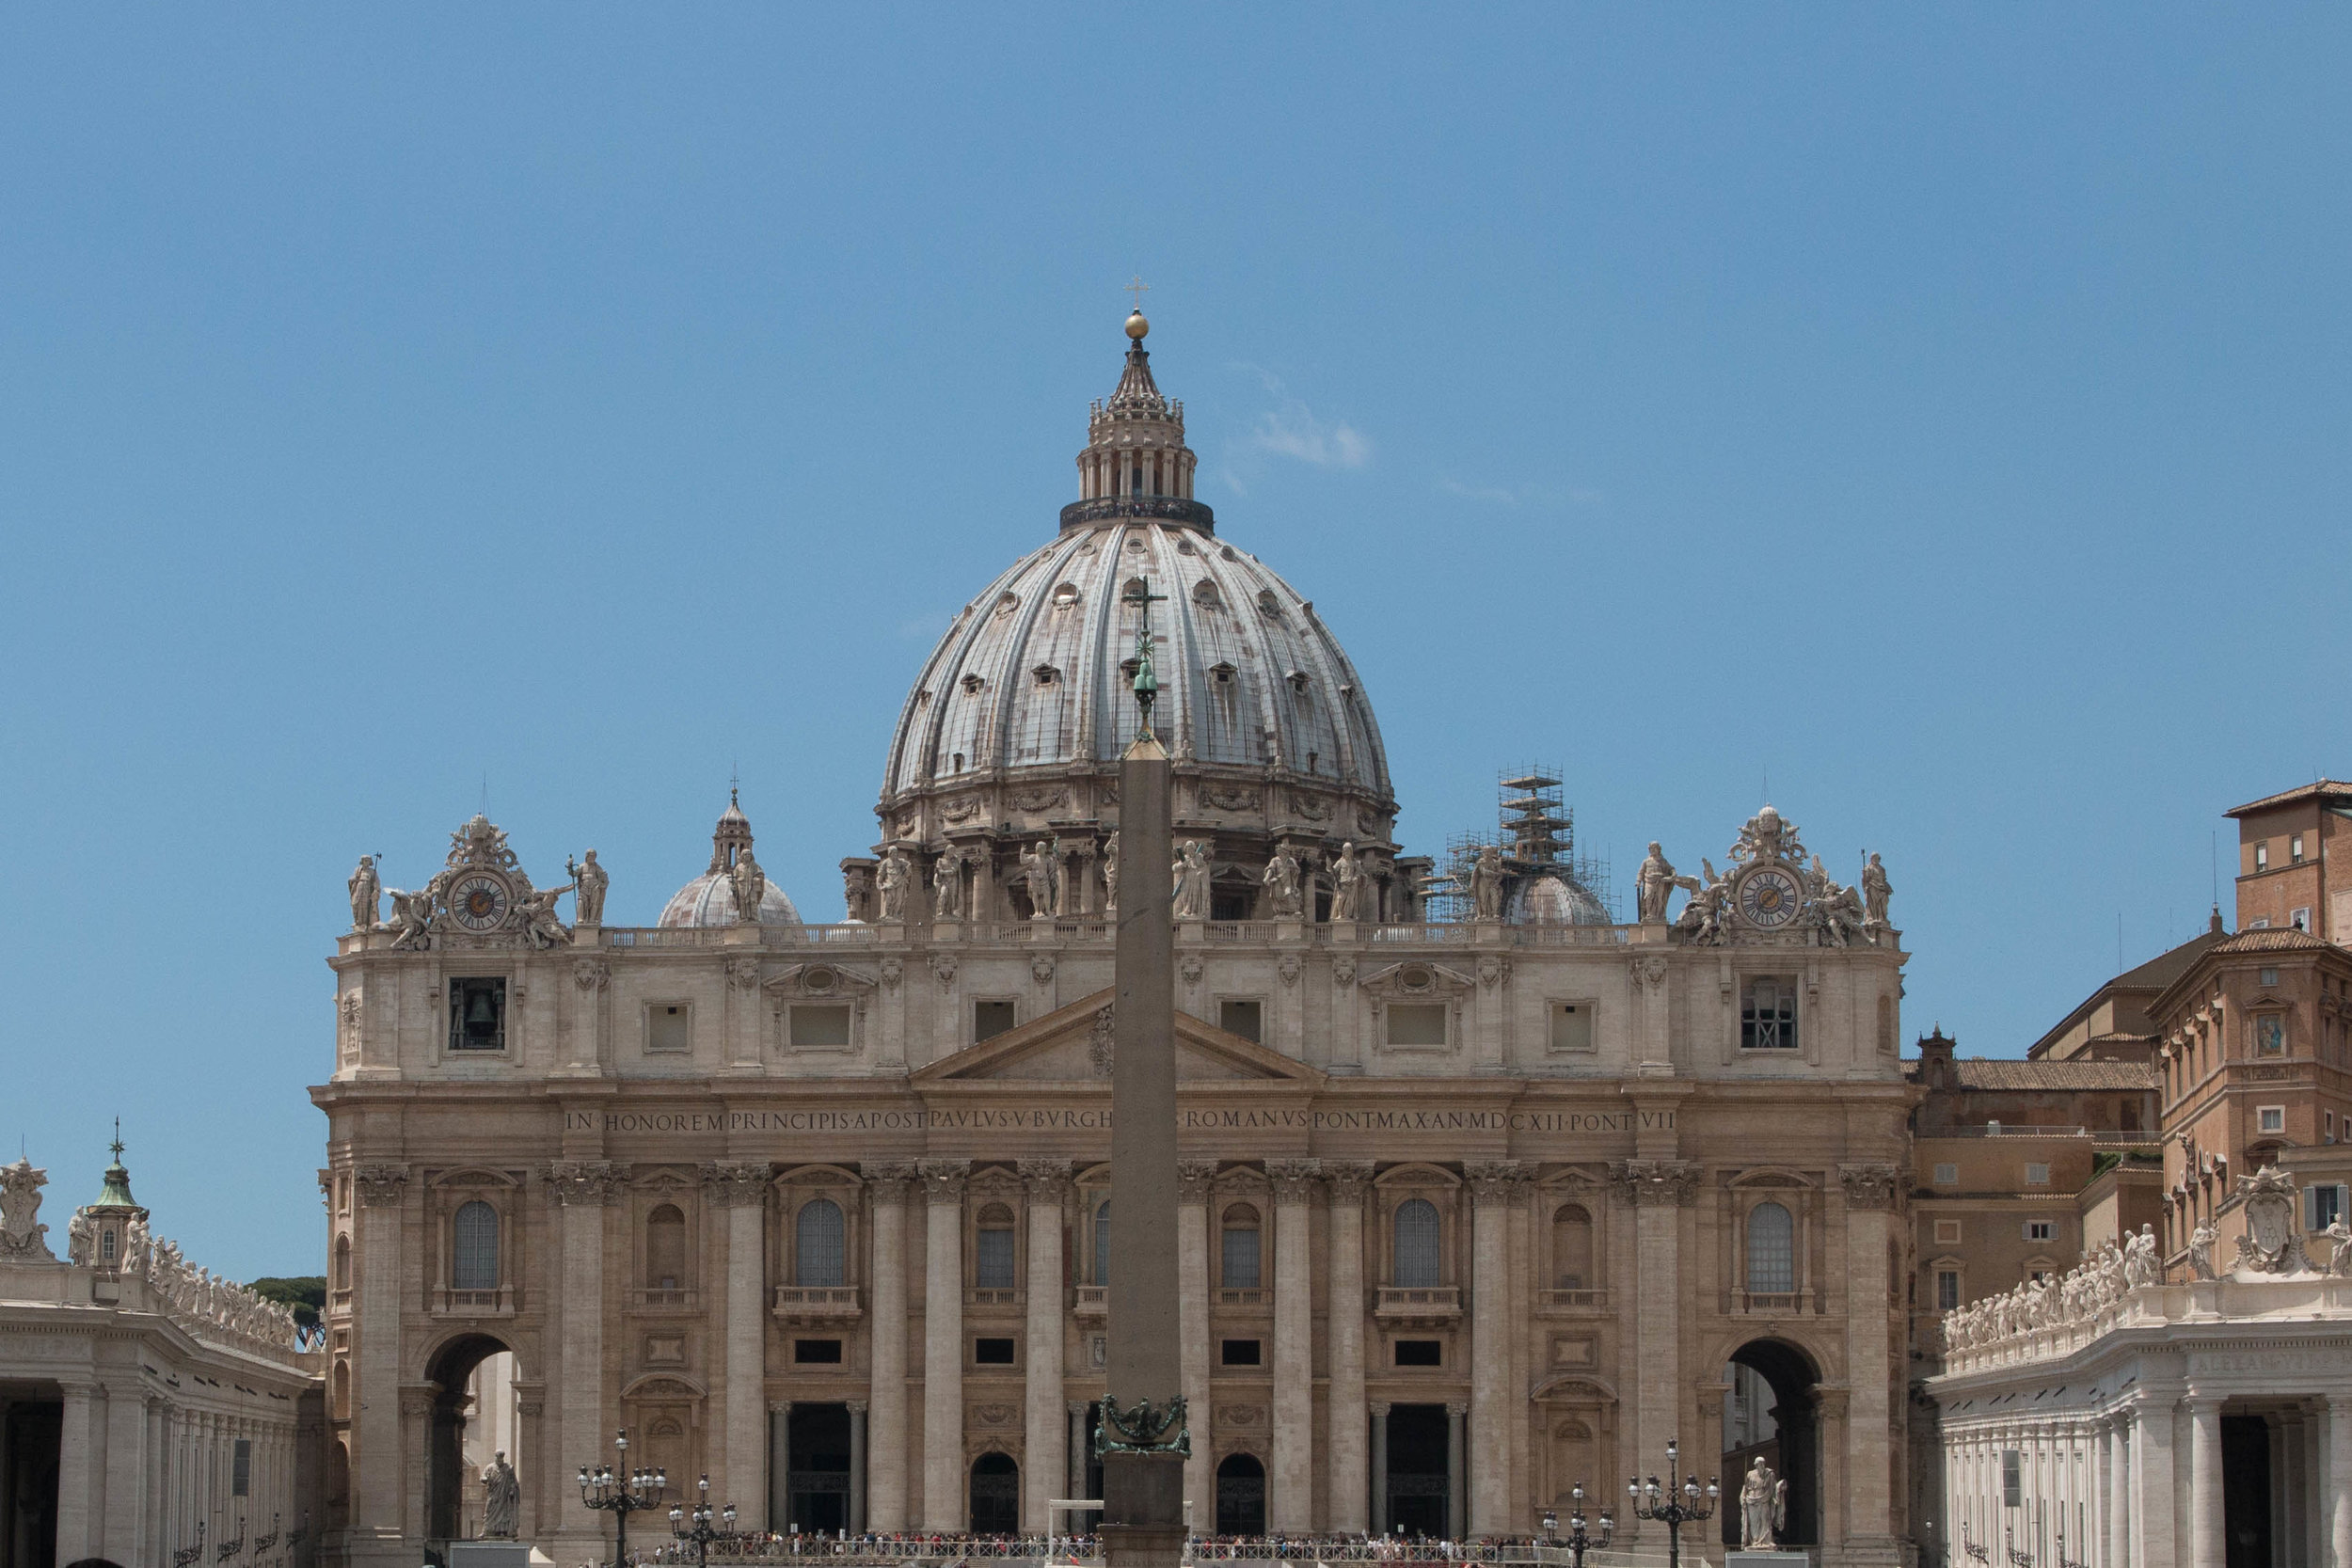 View of St. Peter's Basilica in Vatican City, Spring Europe trip 2017